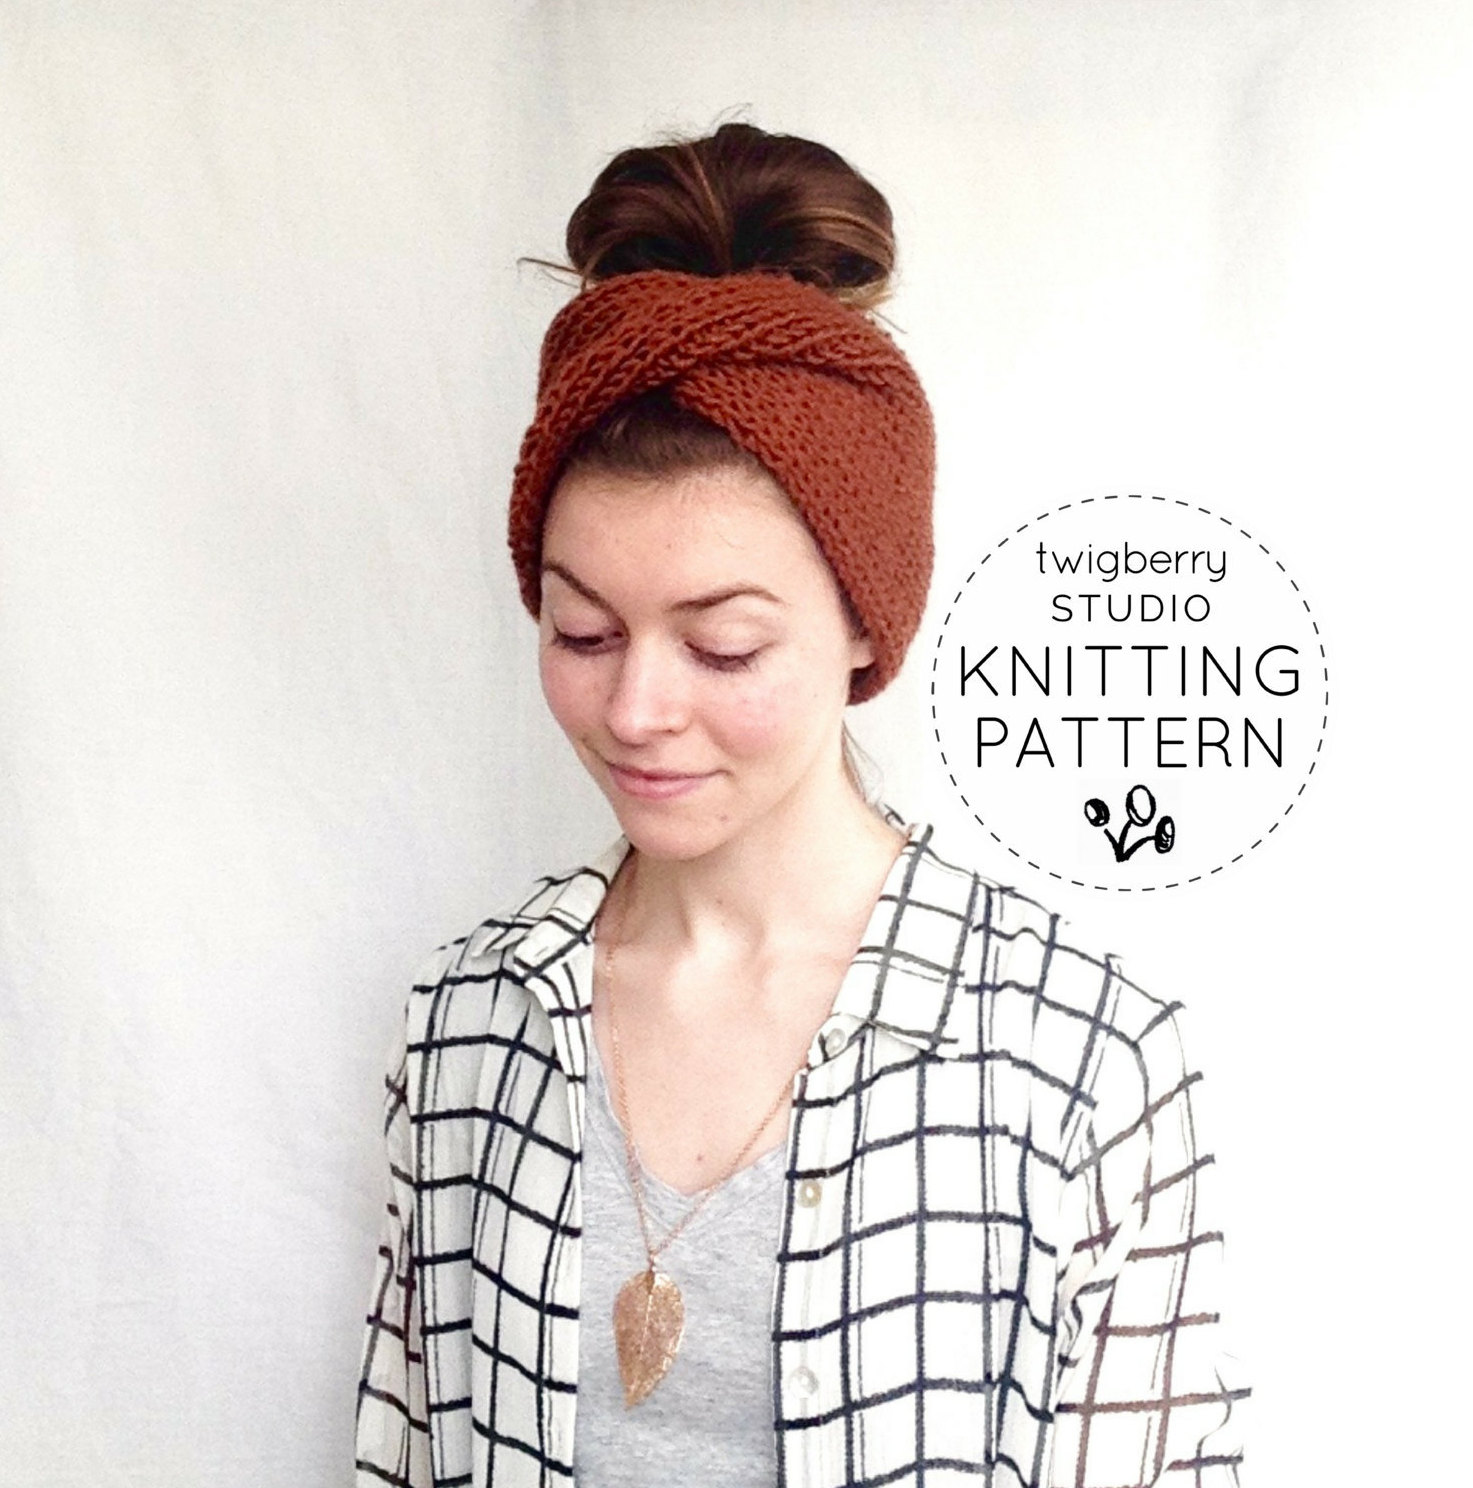 Turban KNITTING PATTERN Twisted Knit Headband Pattern Twisted Turban ...